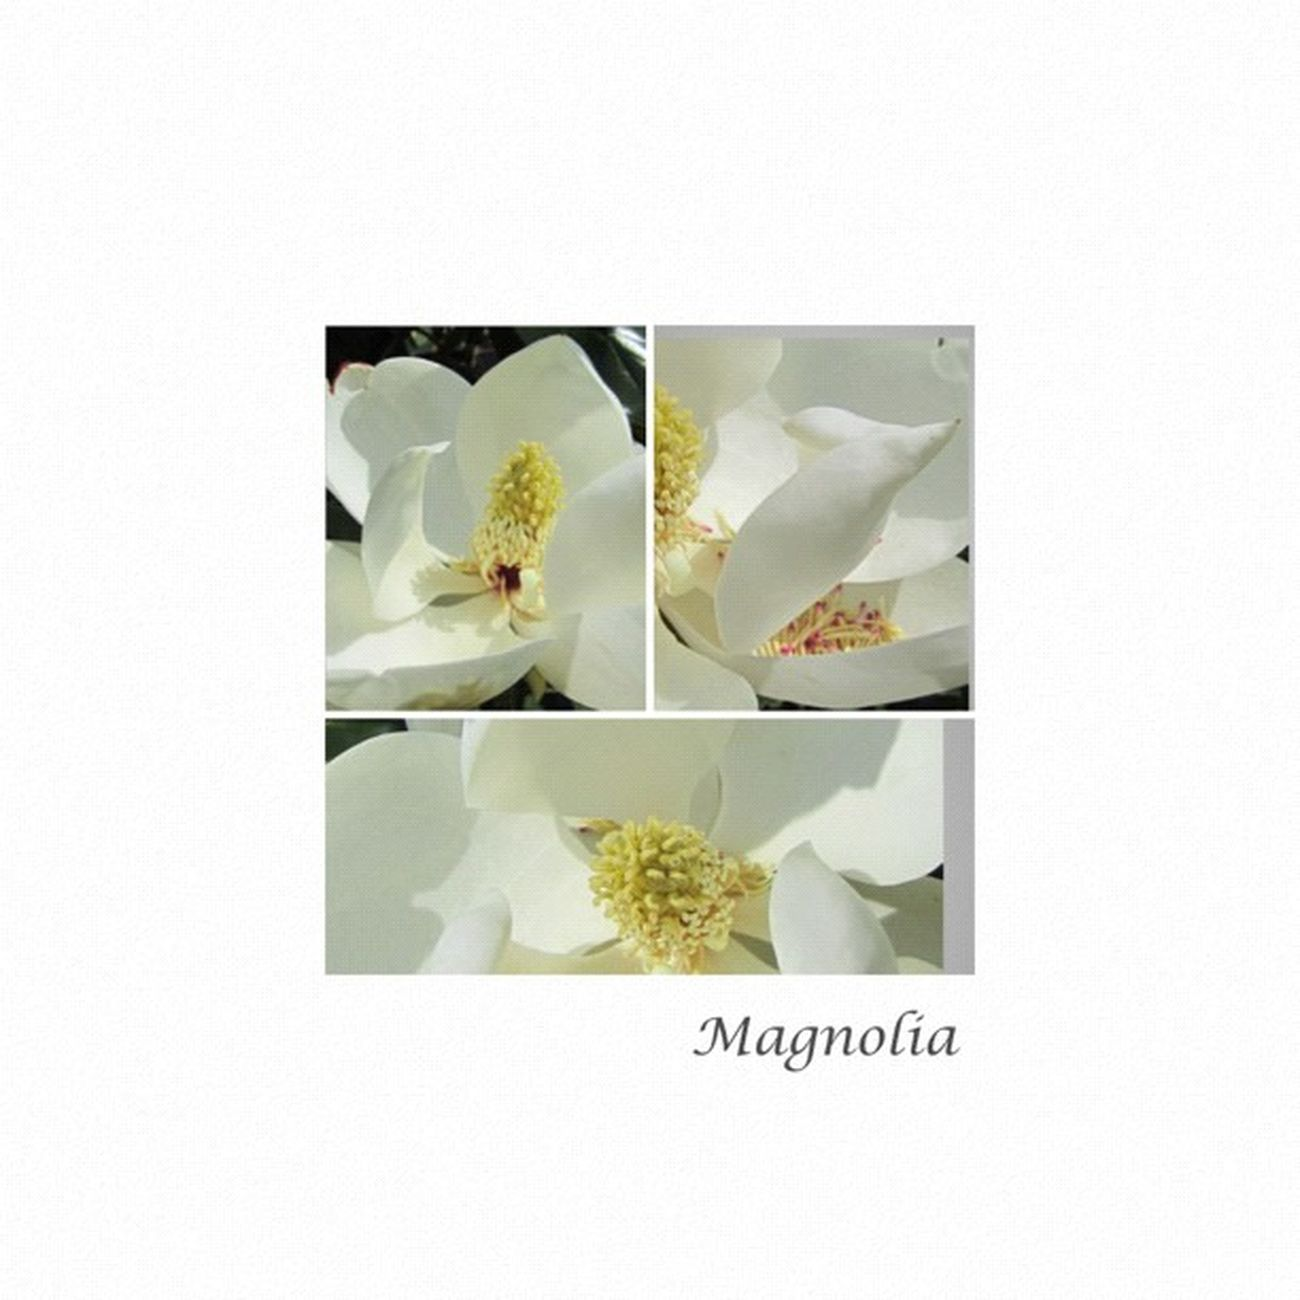 #fuzel fuzelapp Lovely Magnolia Trio Teg Flowerpop Awesome_shot Tree Blossom Magnolia Flowerlove Artflowers All_shots Fuzel 10likes Jj  Instagramhub Webstagram Instanature 15likes Flowersofinstagram Flowermagic